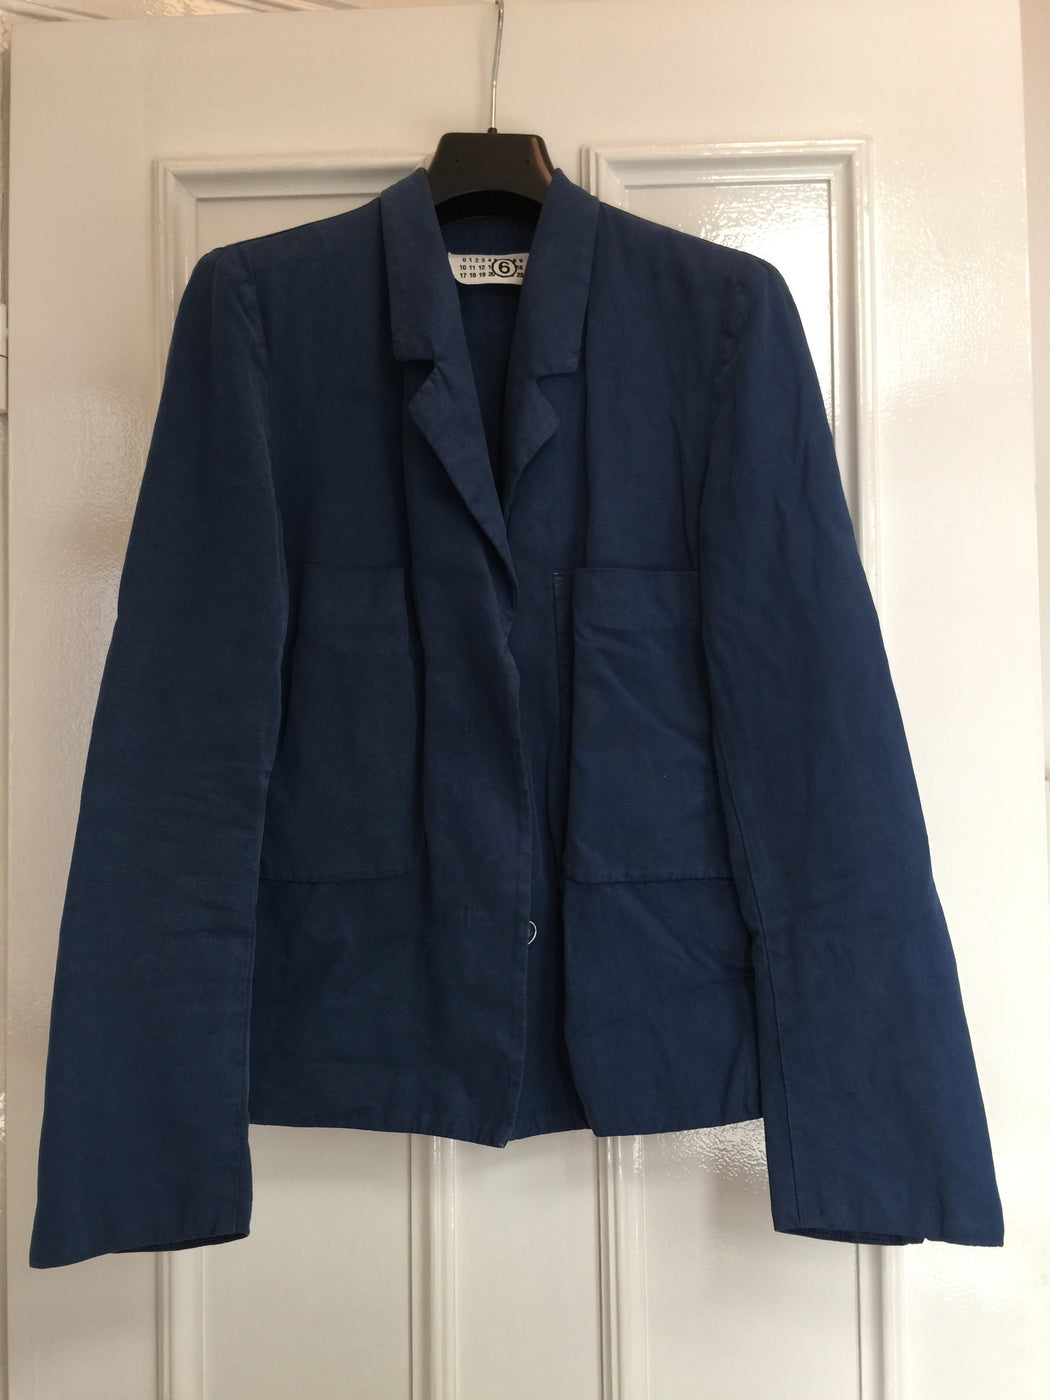 Midnight Blue Cotton / Linen Mix Mm6 Maison Margiela Blazer-jacket Minimalist Detail